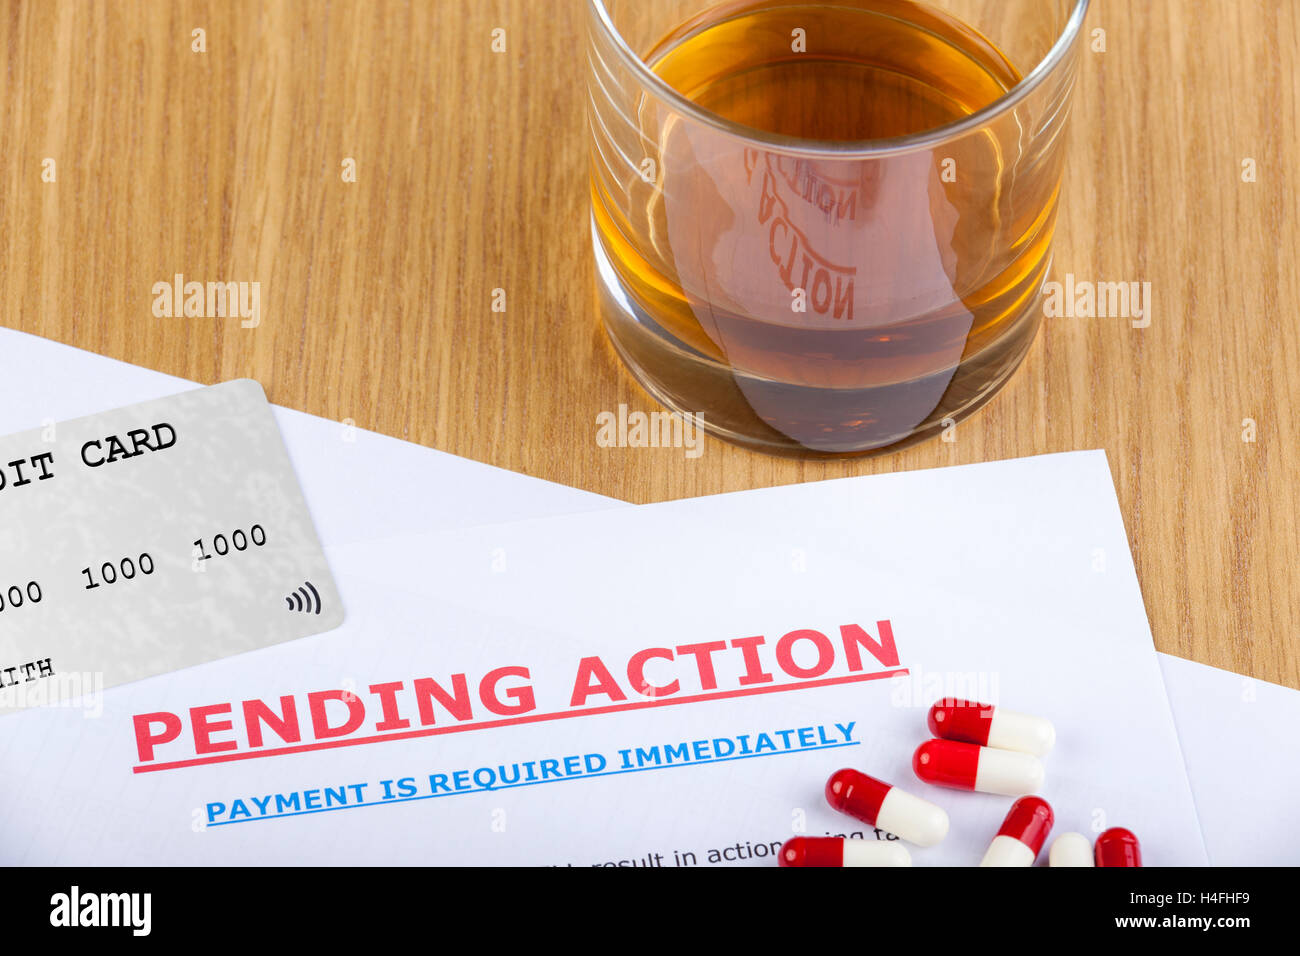 Pending action letter on a table with a credit card and some pills with a glass of whiskey to the side - Stock Image